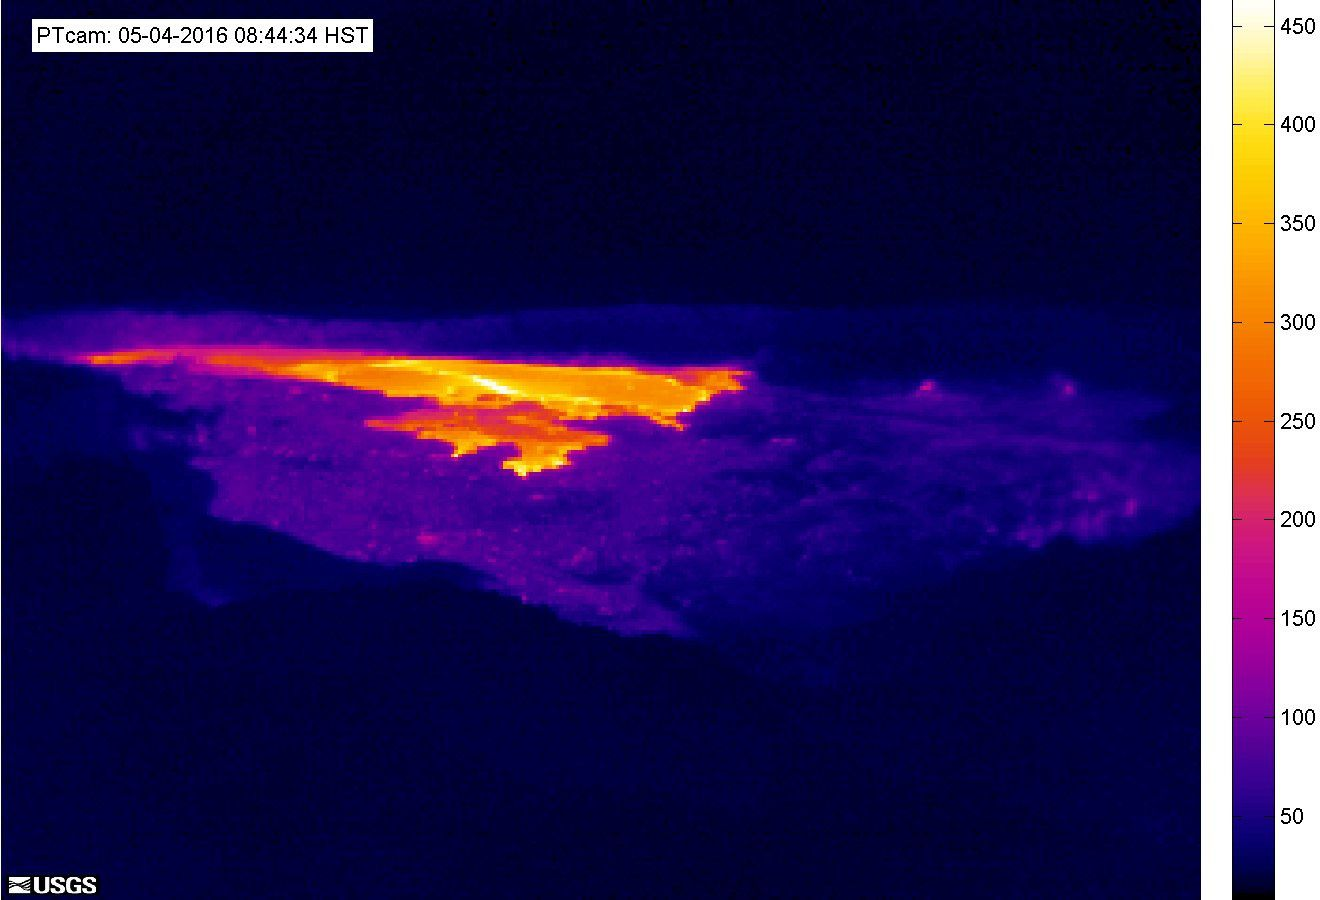 Pu'u O'o - webcam thermique du 05.05.2016 / 8h44 loc. - doc HVO